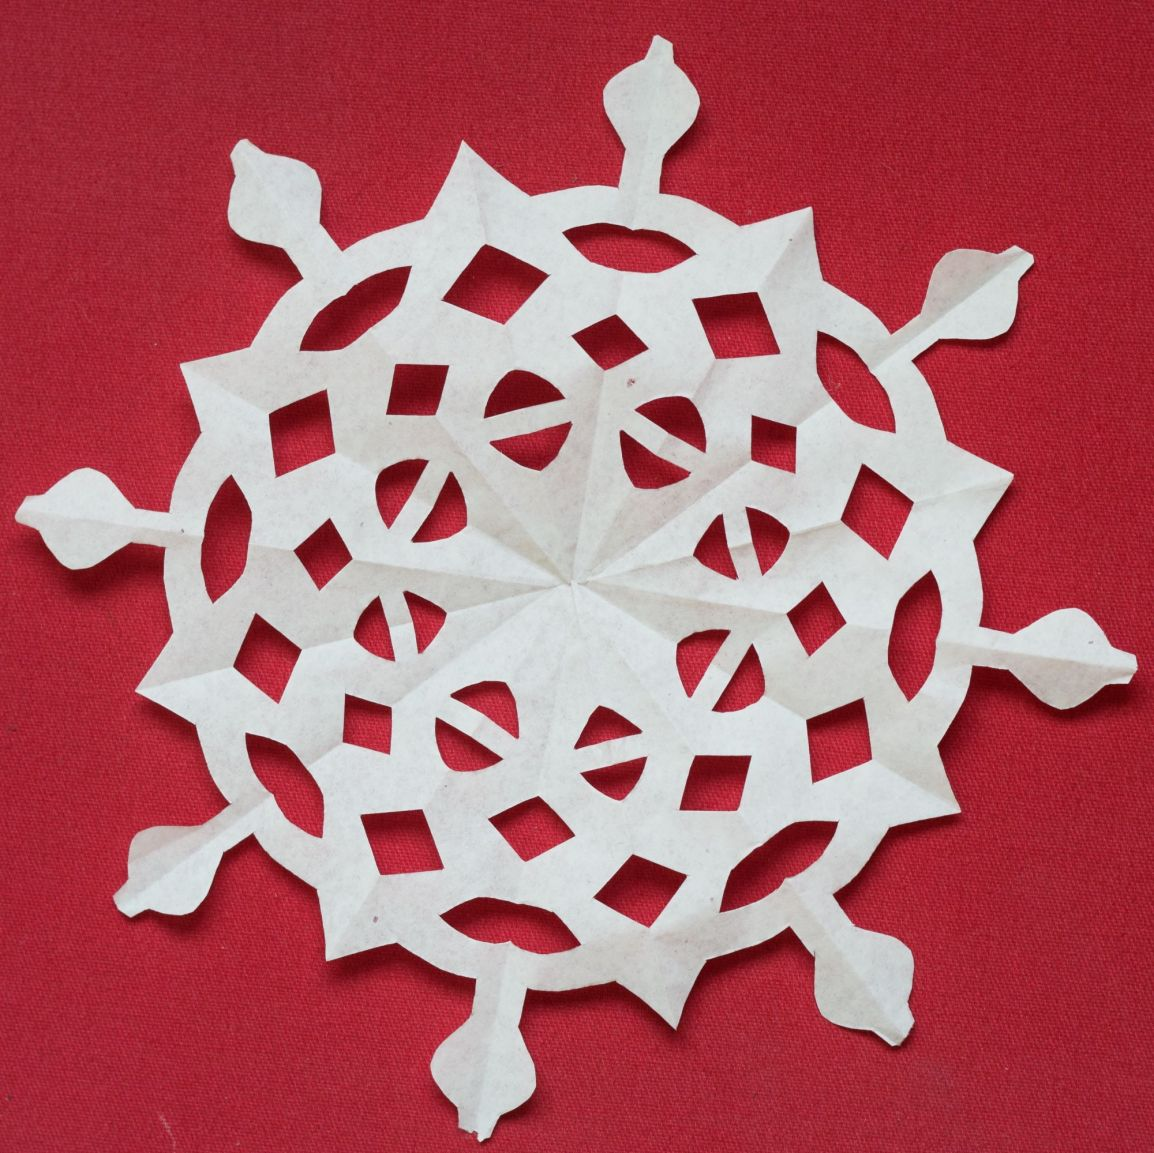 Flat paper snowflake red background